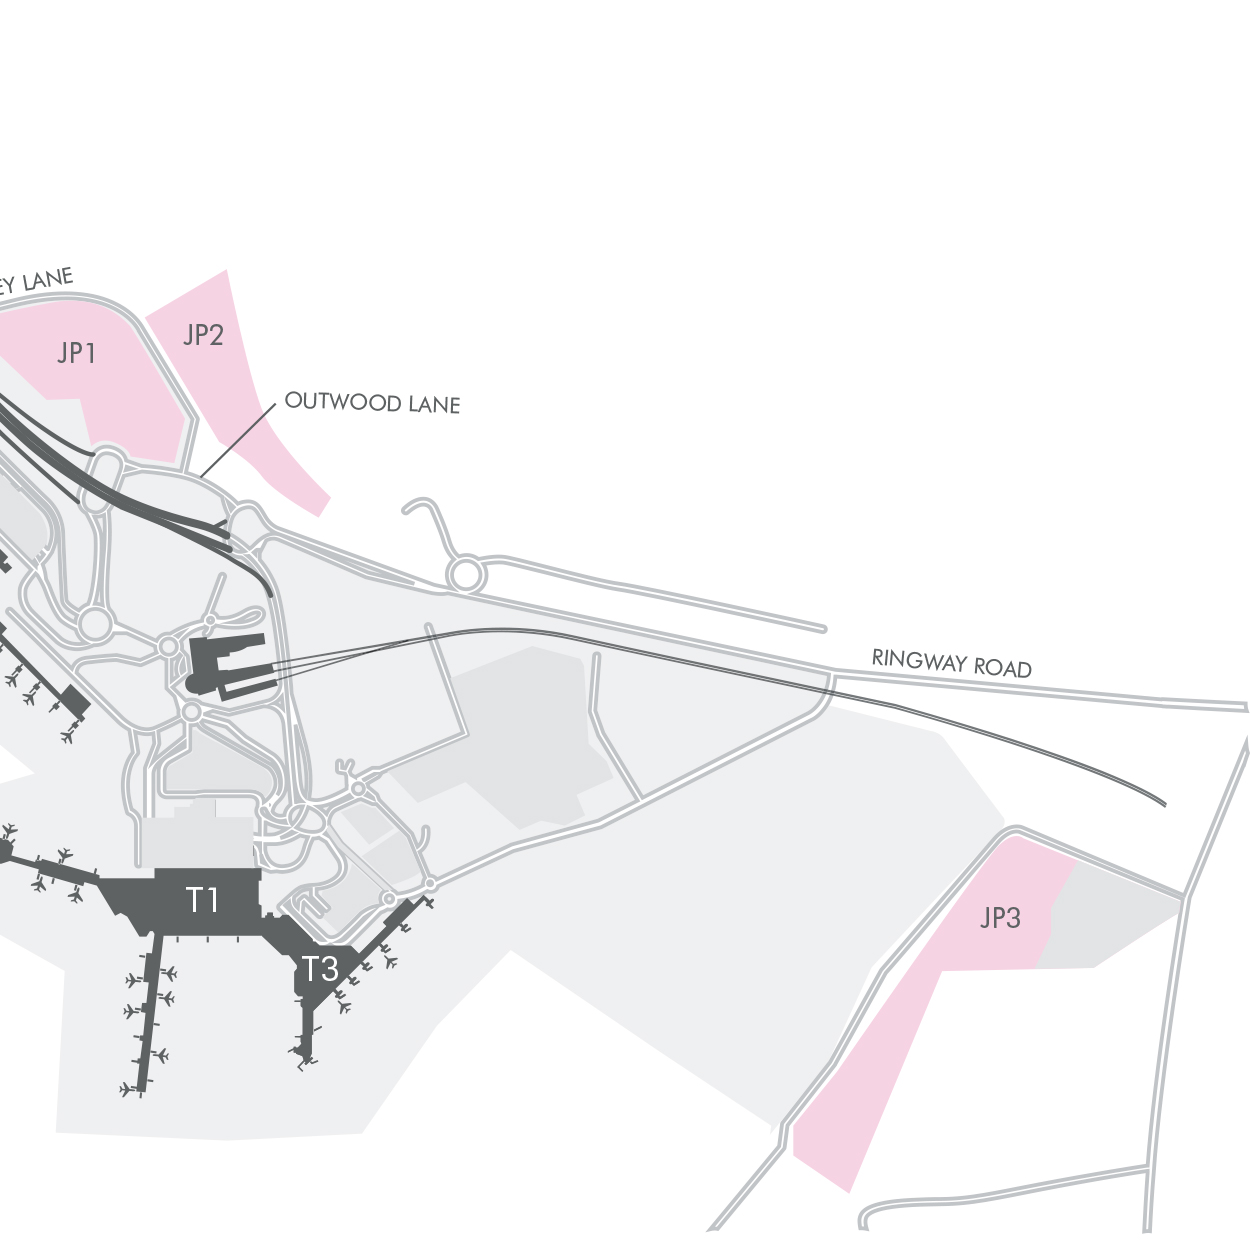 JetParks 3 Car Parking Maps